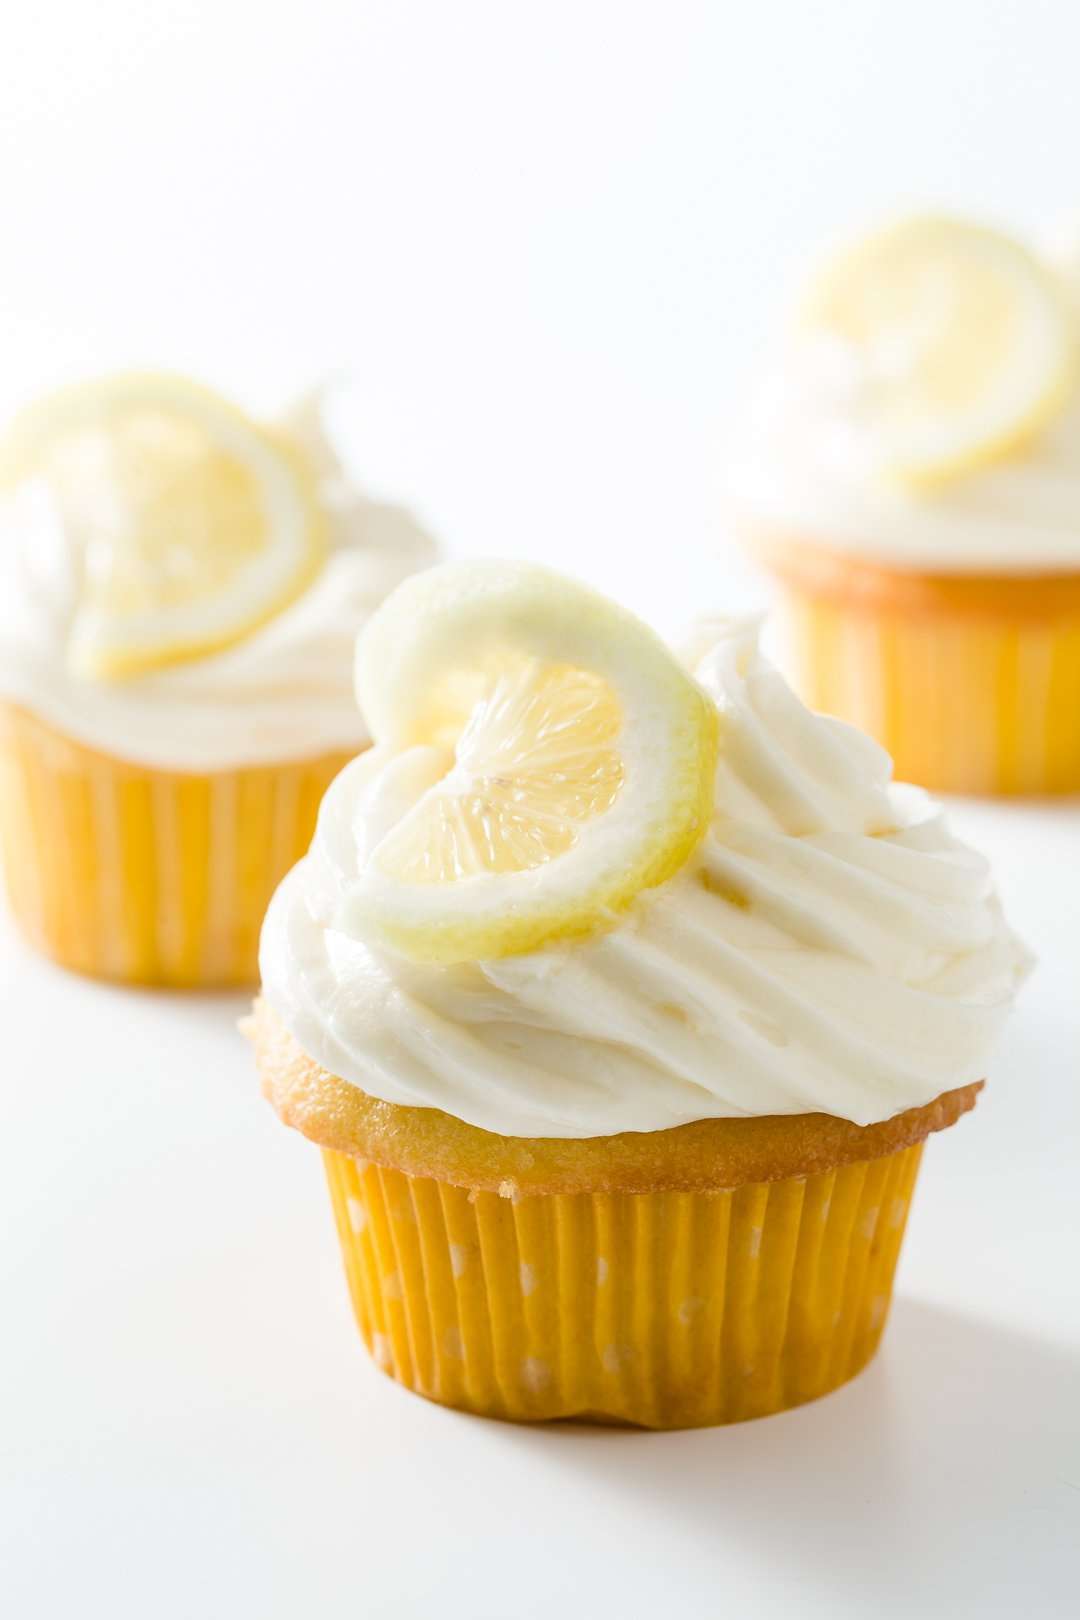 Lemon cream cheese frosting on a few cupcakes